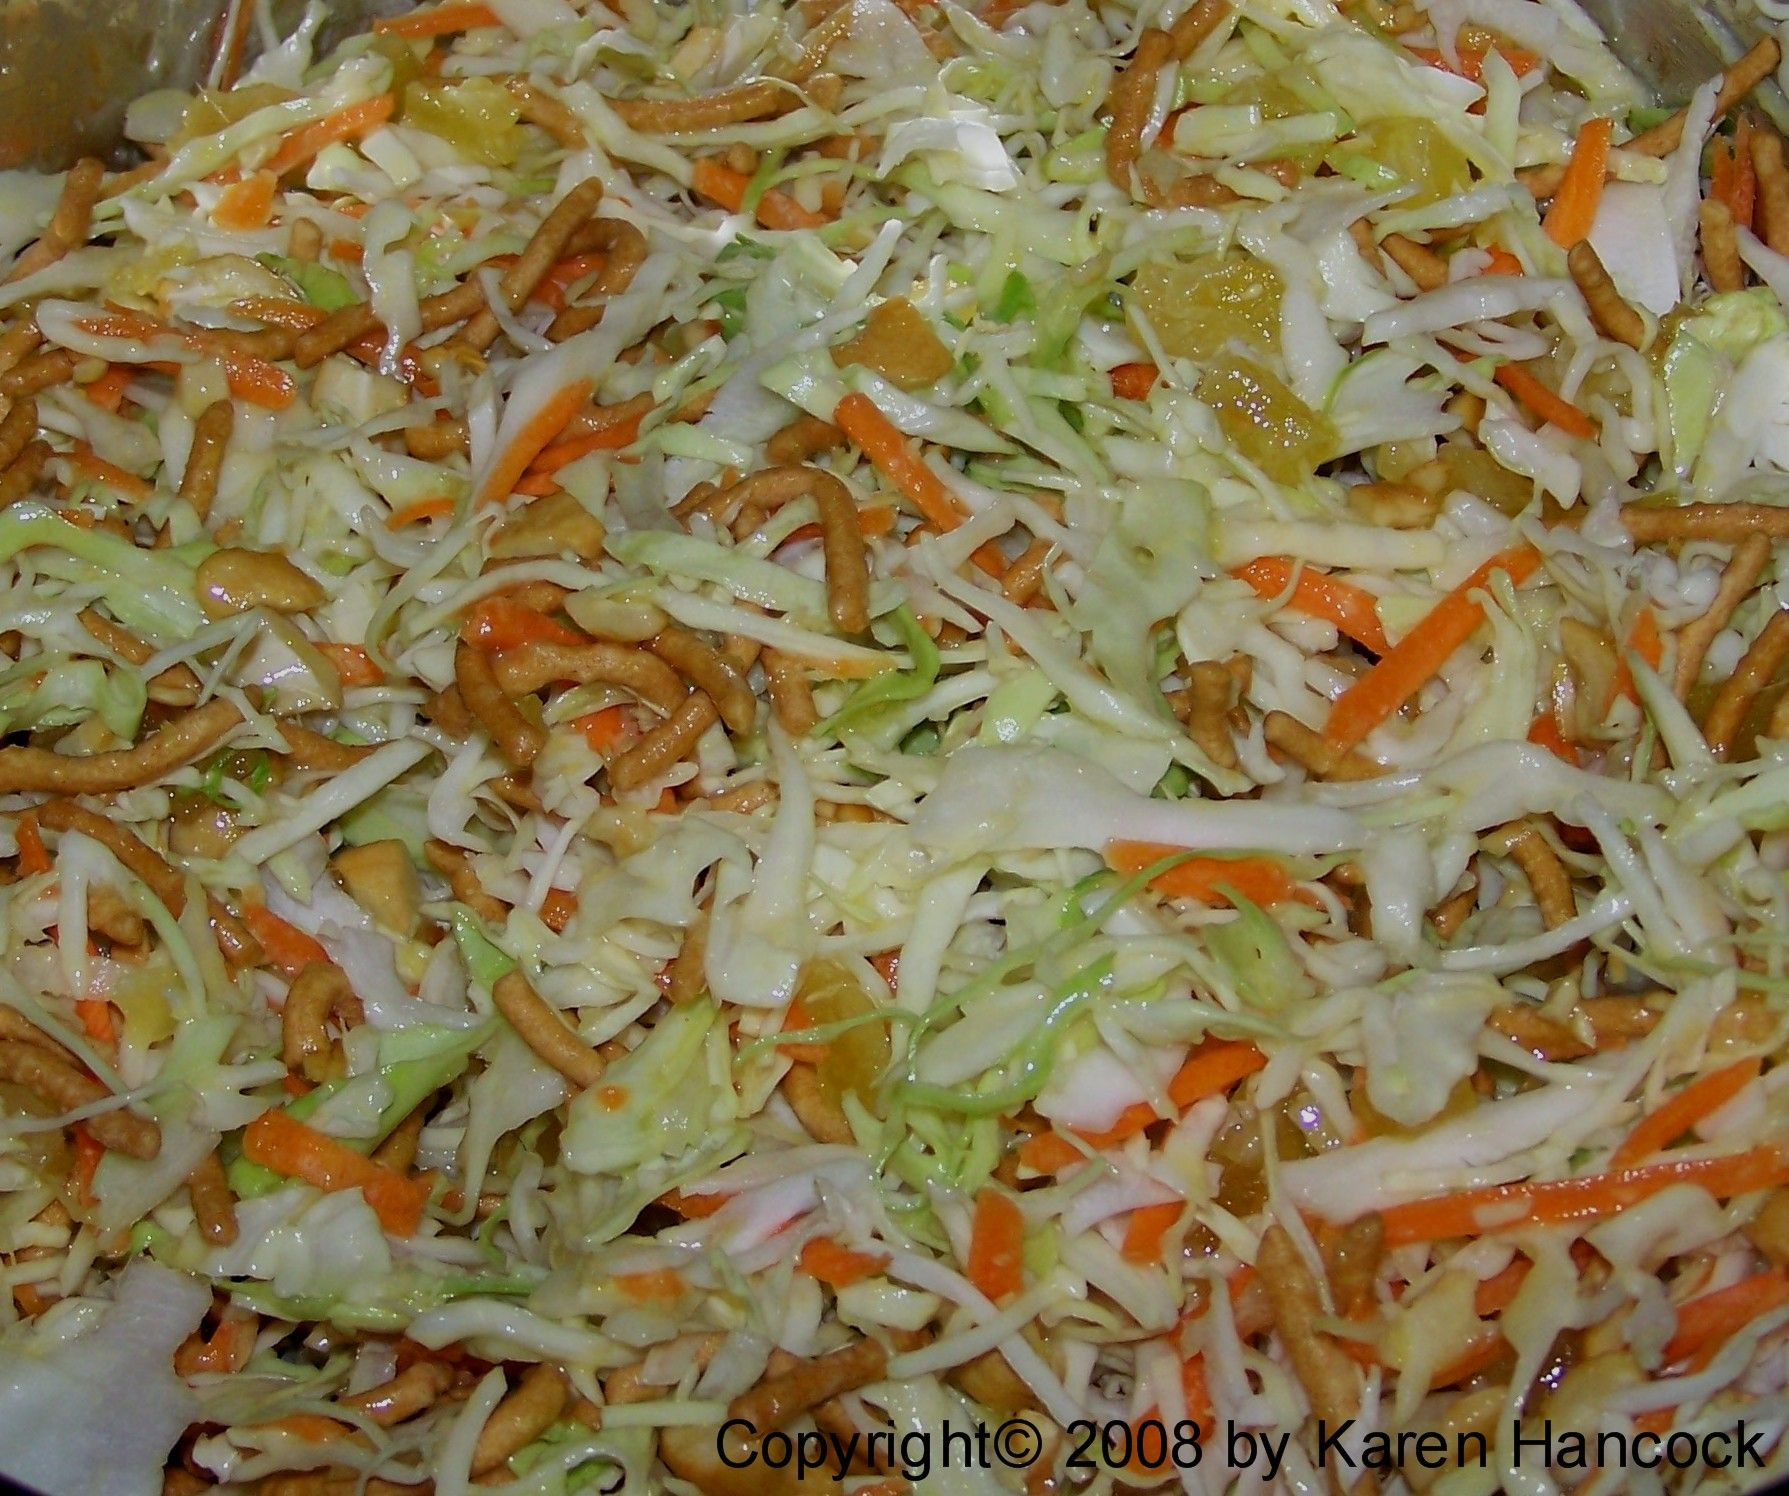 ASIAN GINGER COLESLAW: 1 1/2 lb coleslaw mix, 4 green onions including tops sliced, 1 cp soy nuts, or coarsely chpd cashews, 1 cp dried pineapple wedges, coarsely chpd, 2 cps chow mien noodles. Dressing: 2 one in. pieces fresh ginger, 1/4 cp rice vinegar, 1/3 cp sugar, 2 T orange juice concentrate, 1/4 tsp salt, 1/2 cp vegetable oil, 1 T sesame oil.